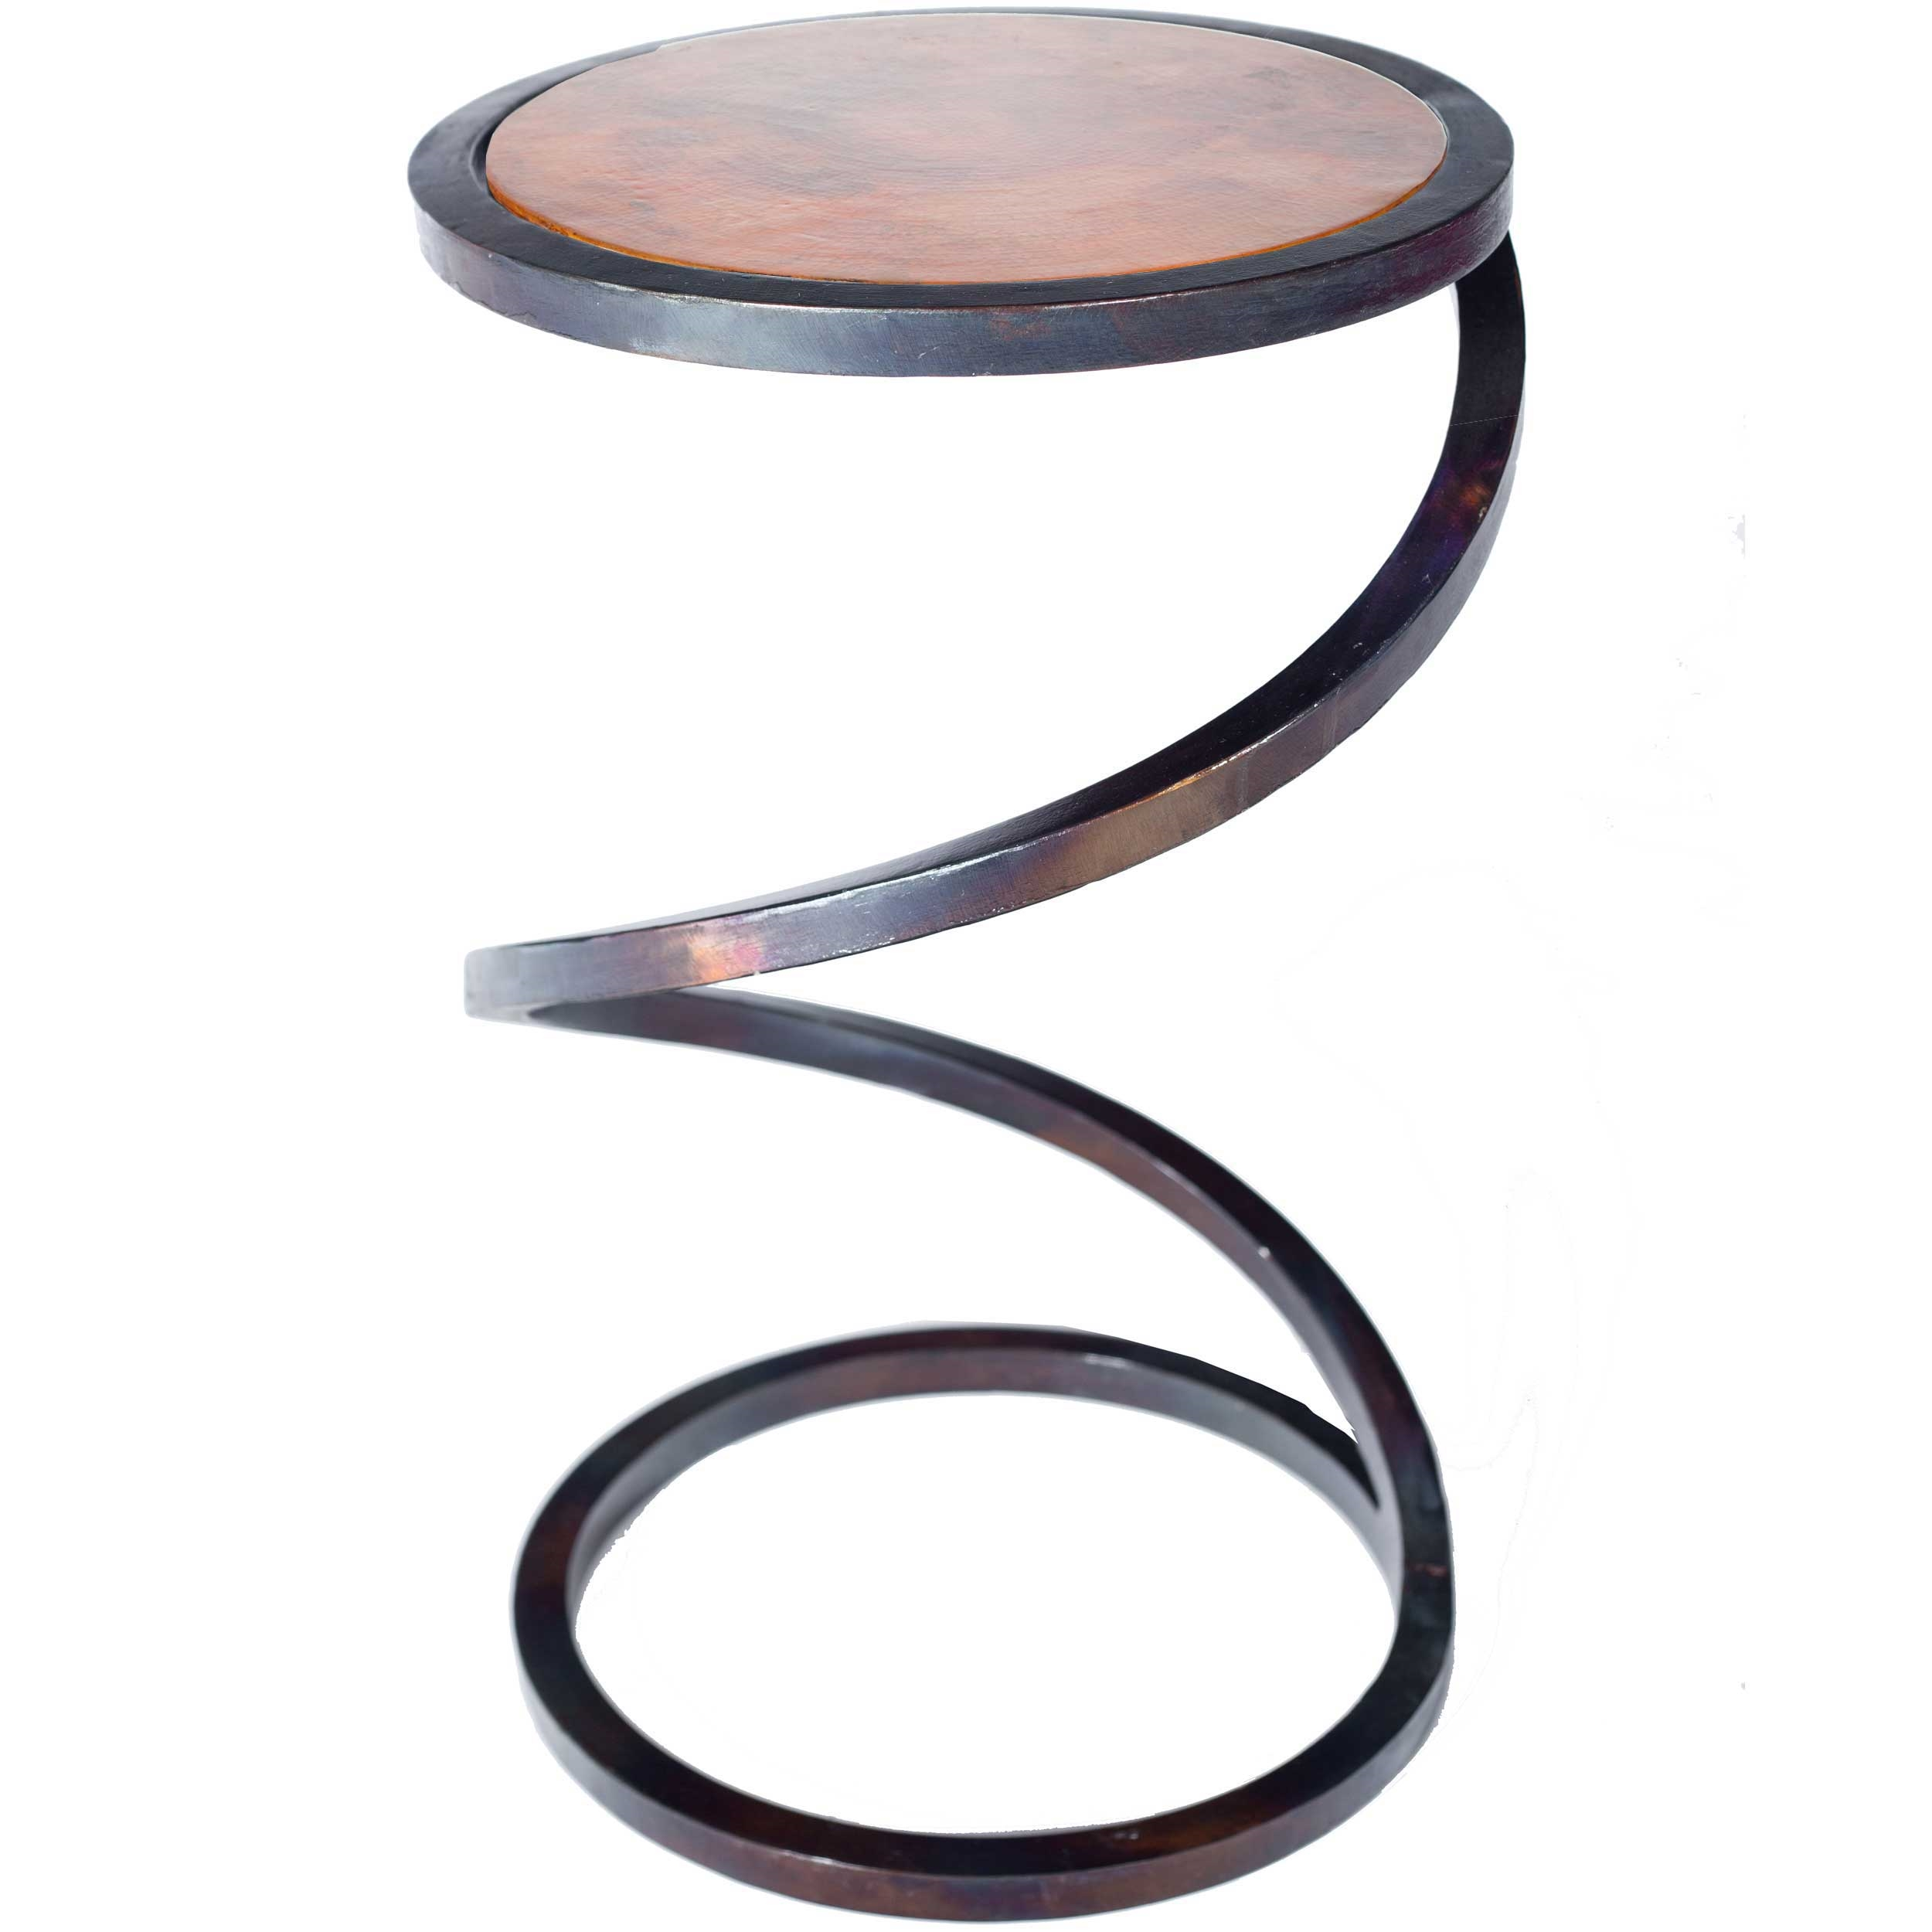 spiral round iron accent table with hammered copper top twi dark brown larger ashley chairs bar towels full size mattress feet inch legs white resin coffee modern mirrored clear